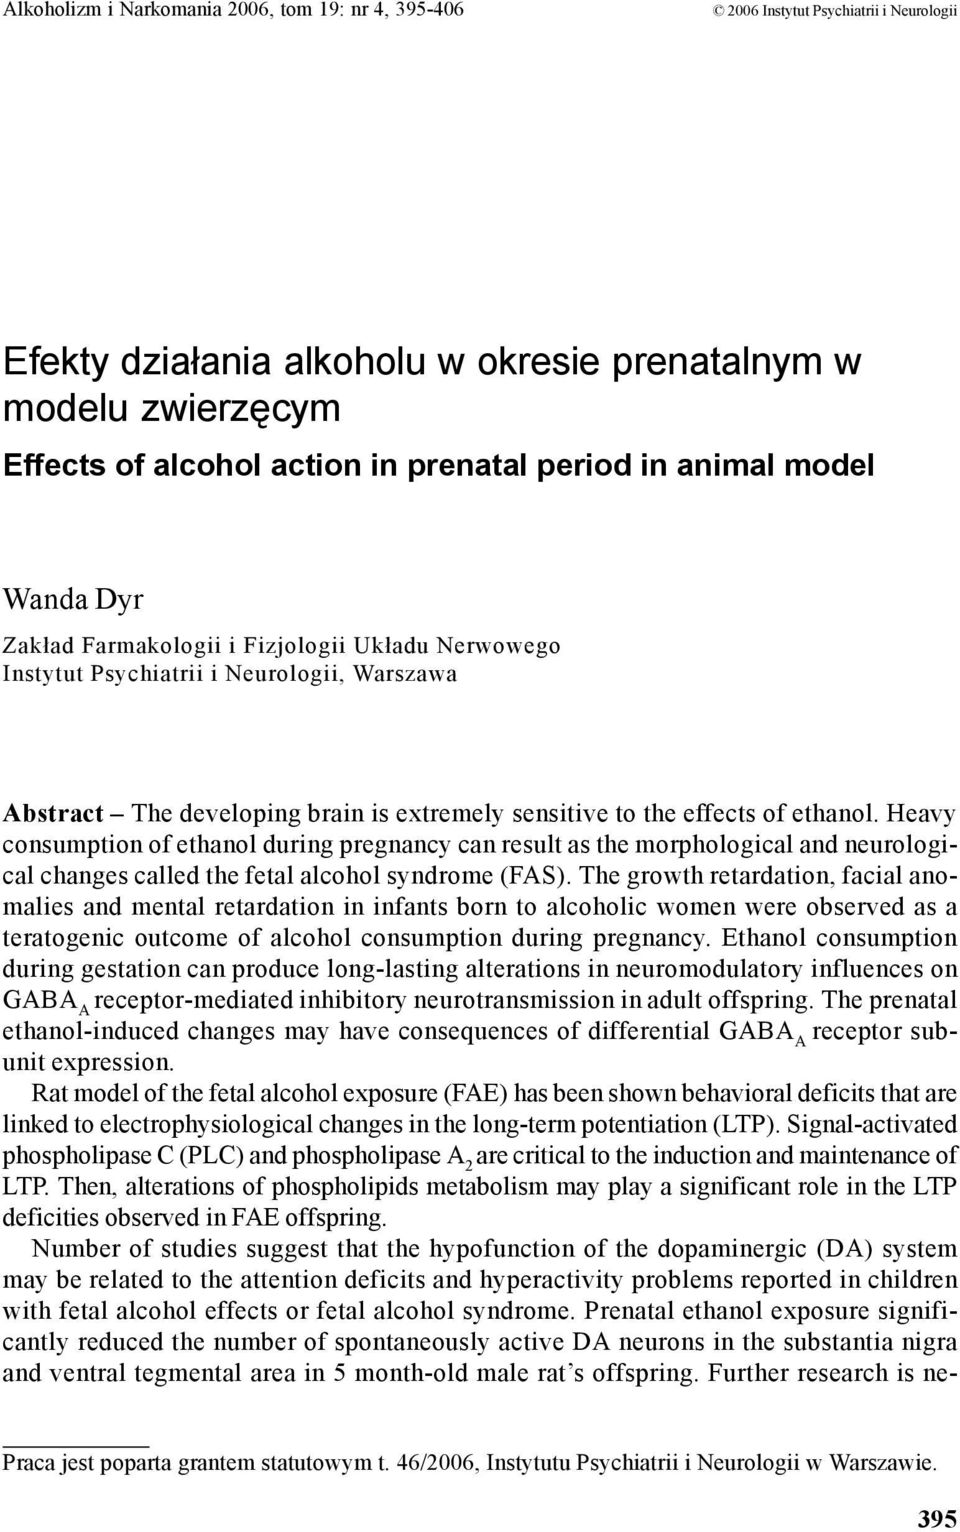 ethanol. Heavy consumption of ethanol during pregnancy can result as the morphological and neurological changes called the fetal alcohol syndrome (FAS).